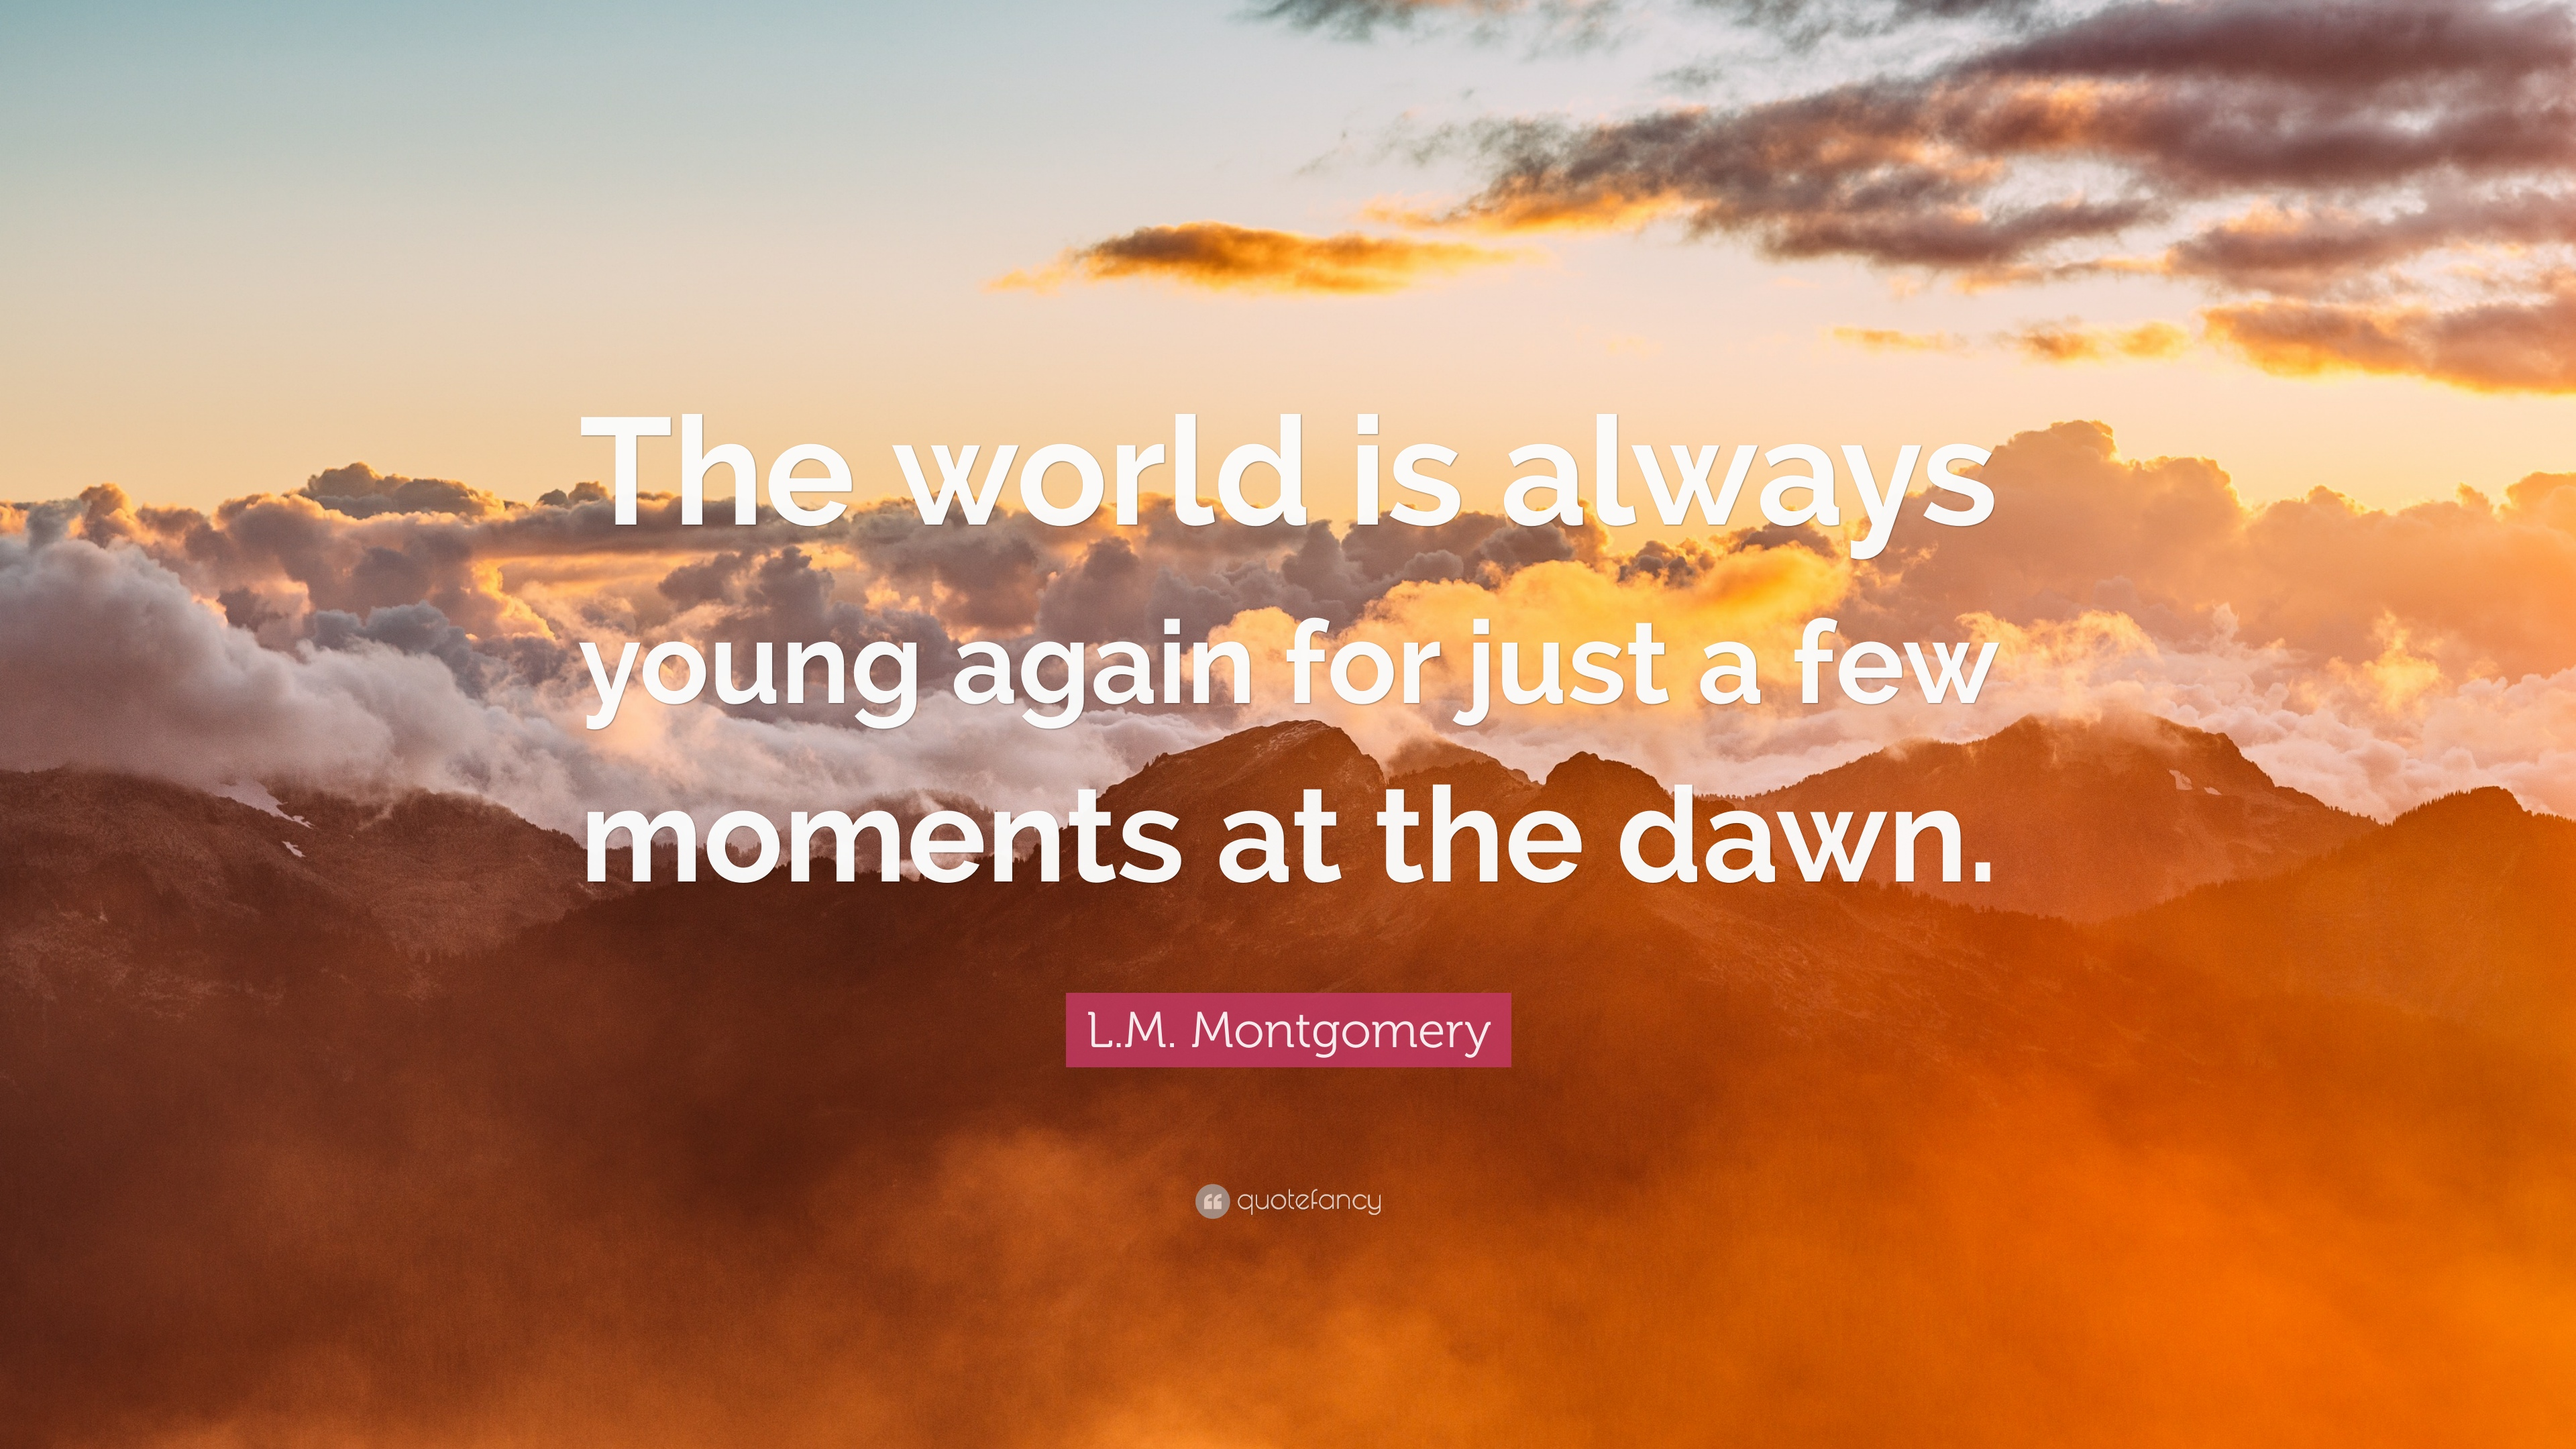 Lm Montgomery Quote The World Is Always Young Again For Just A